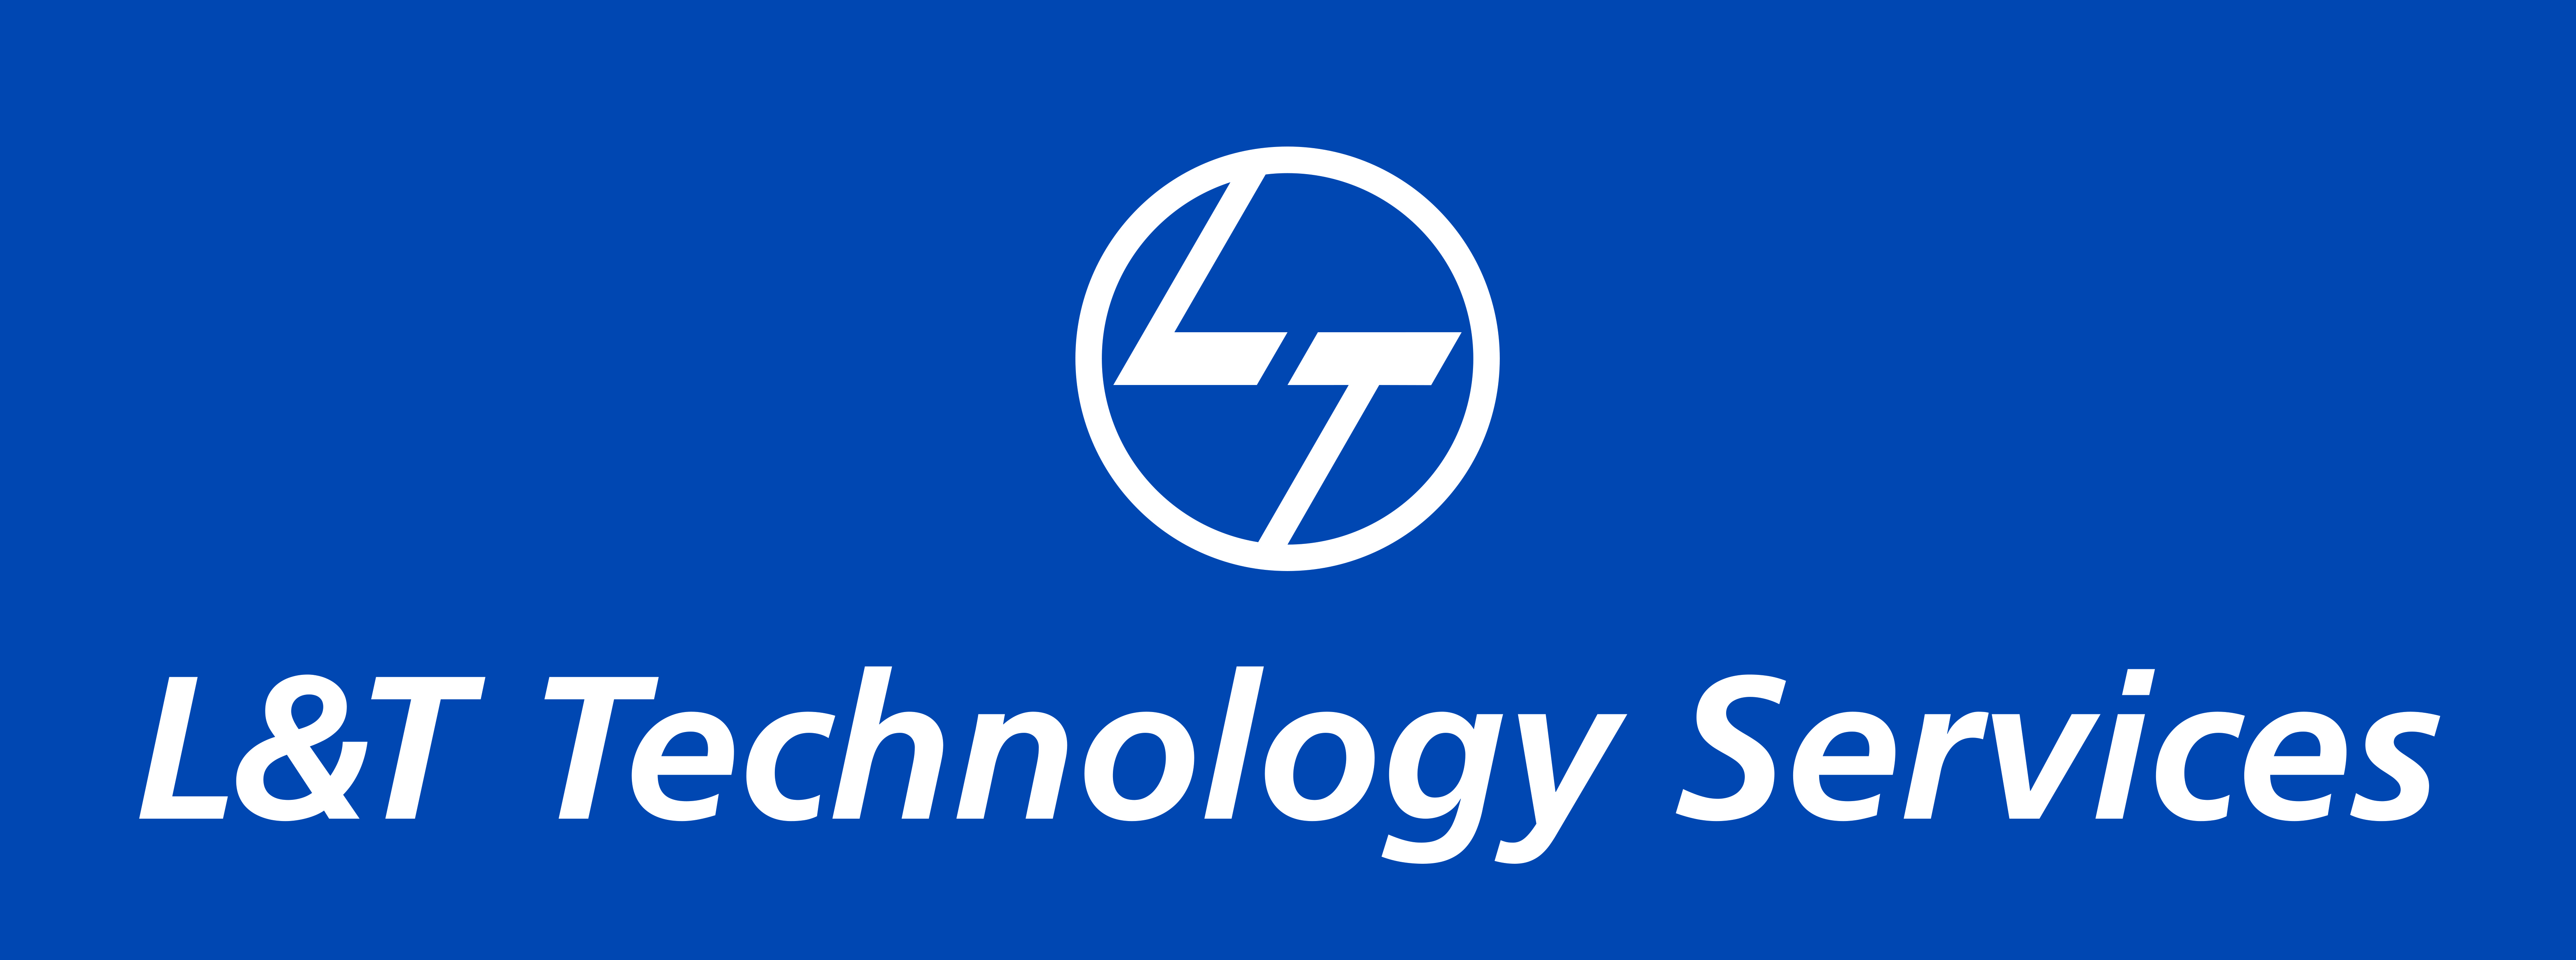 Logo of L&T Technology Services